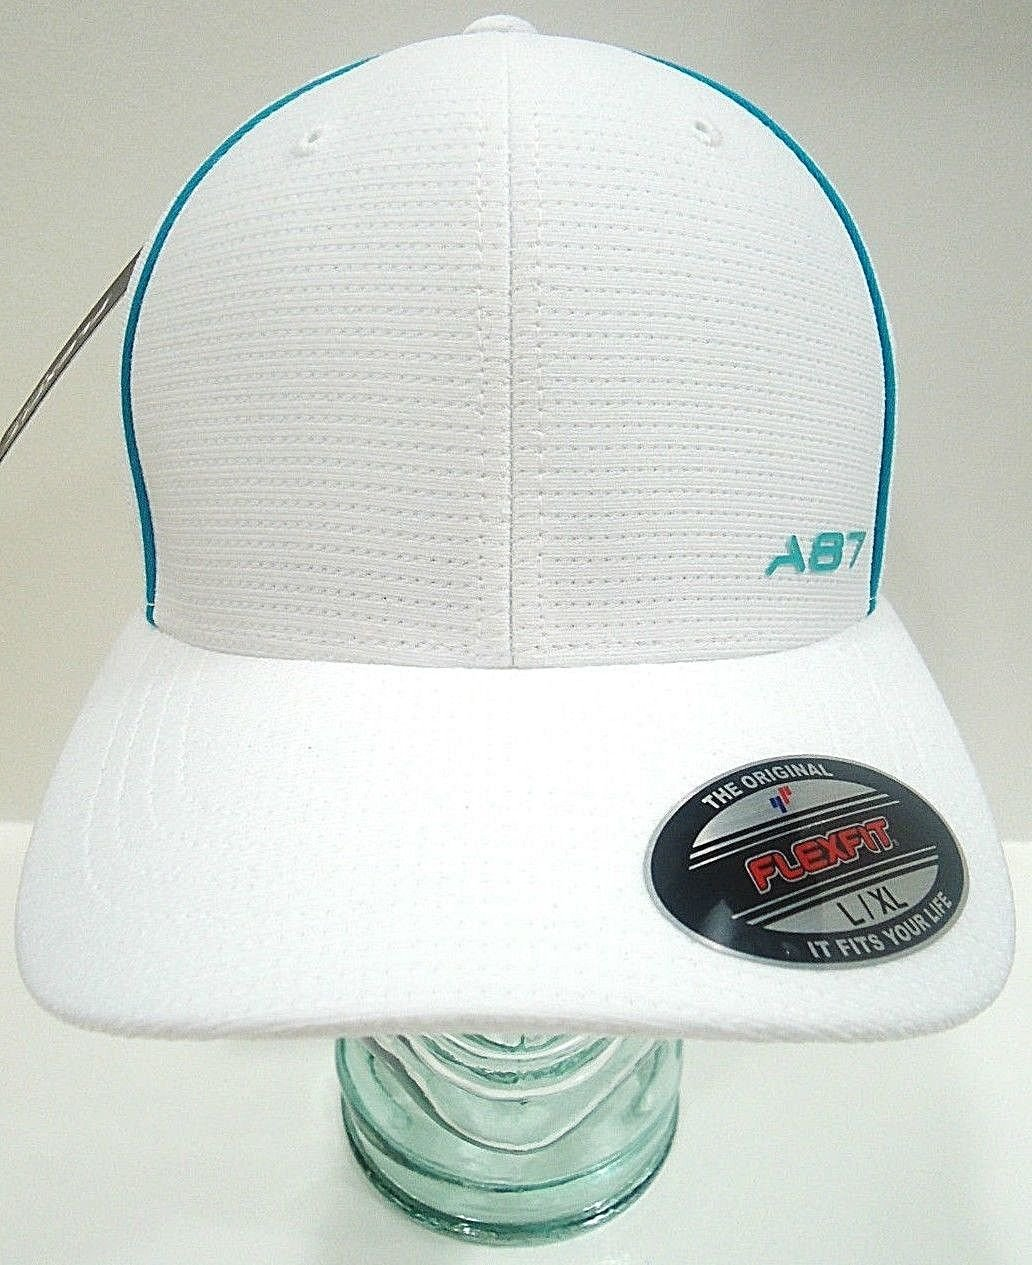 AREOPOSTALE - FLEXFIT - WHITE - AQUA - FITTED - BASEBALL - CAP - NEW - LARGE/XL